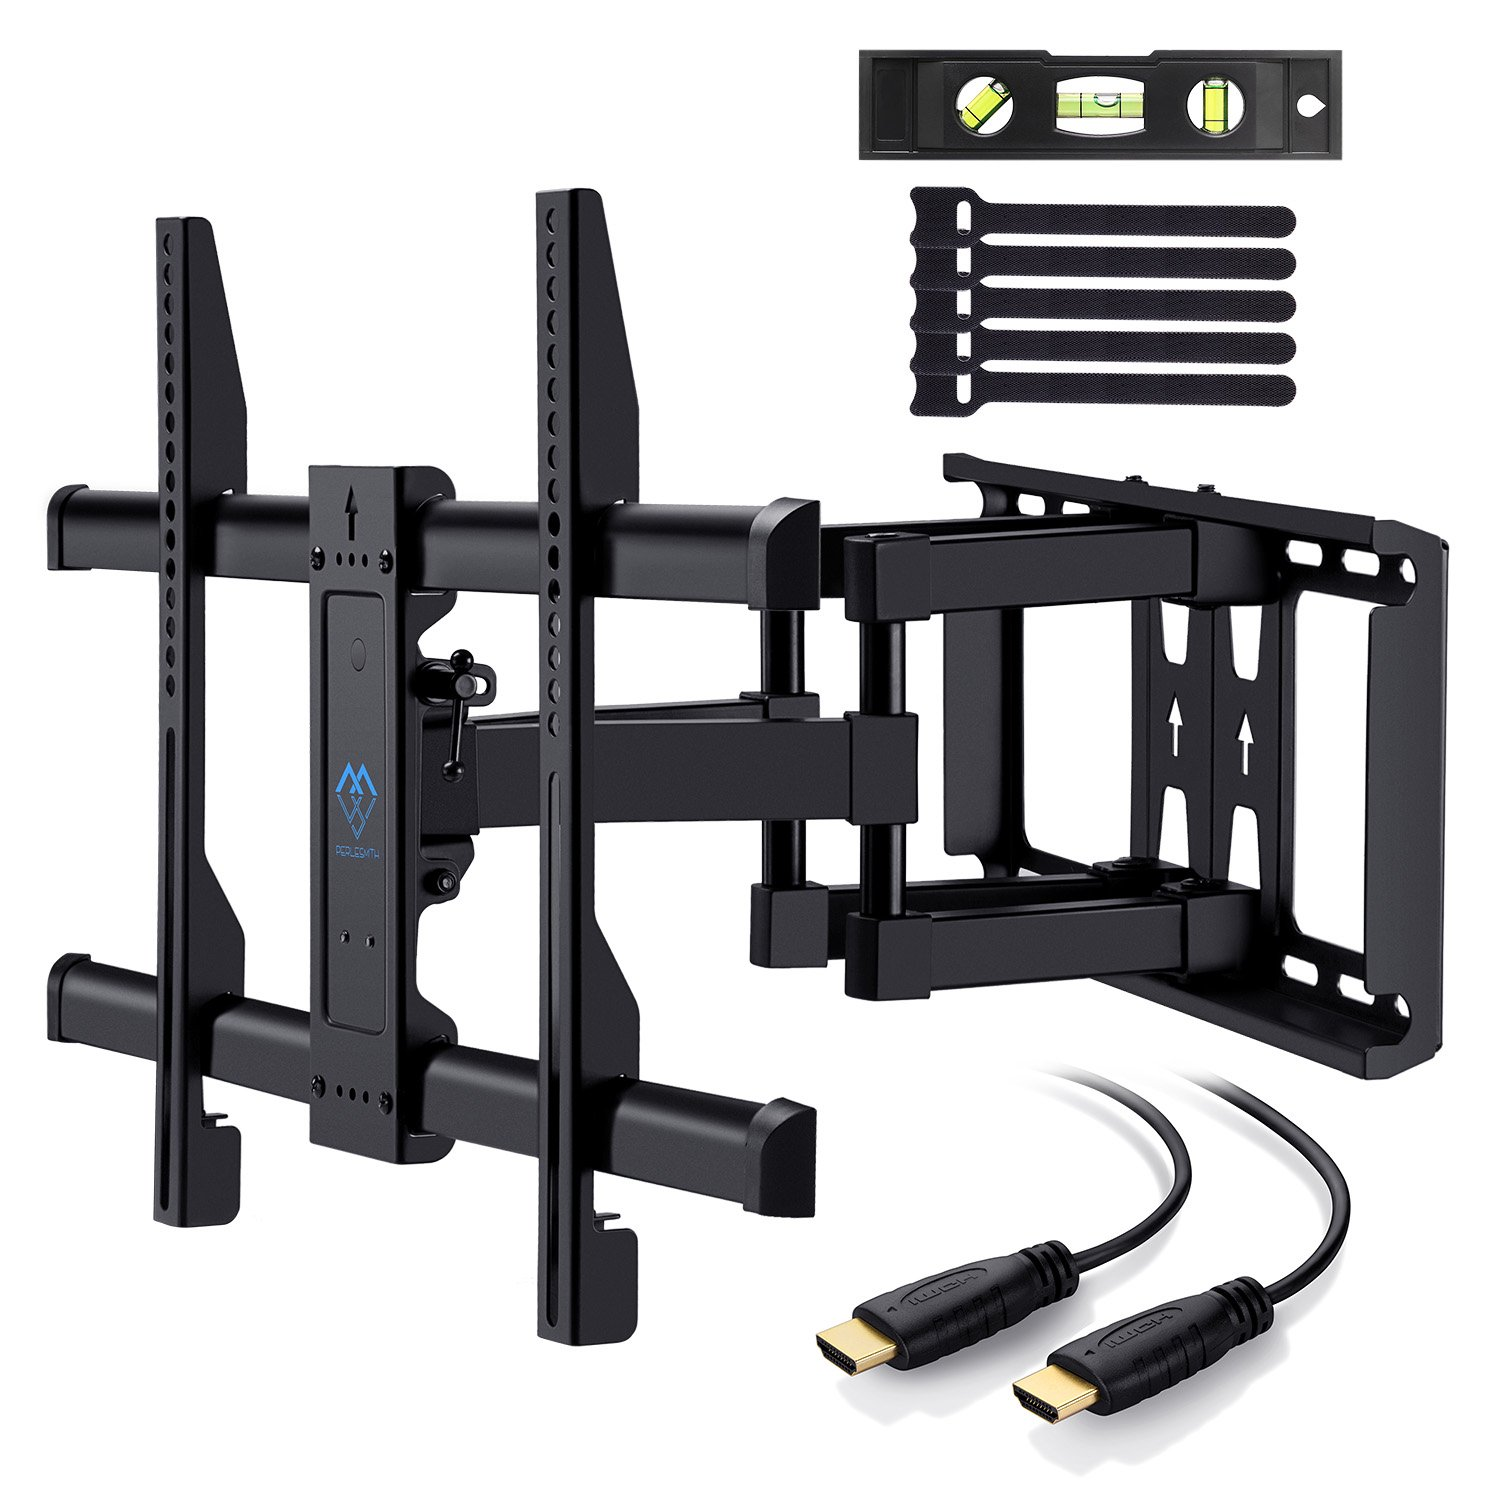 Perlesmith Tv Wall Mount Bracket Full Motion Dual Articulating Arm For Most 37 70 Inch Led, Lcd, Oled, Flat Screen,Plasma T Vs Up To 132lbs Vesa 600x400mm With Tilt, Swivel And Rotation Hdmi Cable by Perlesmith